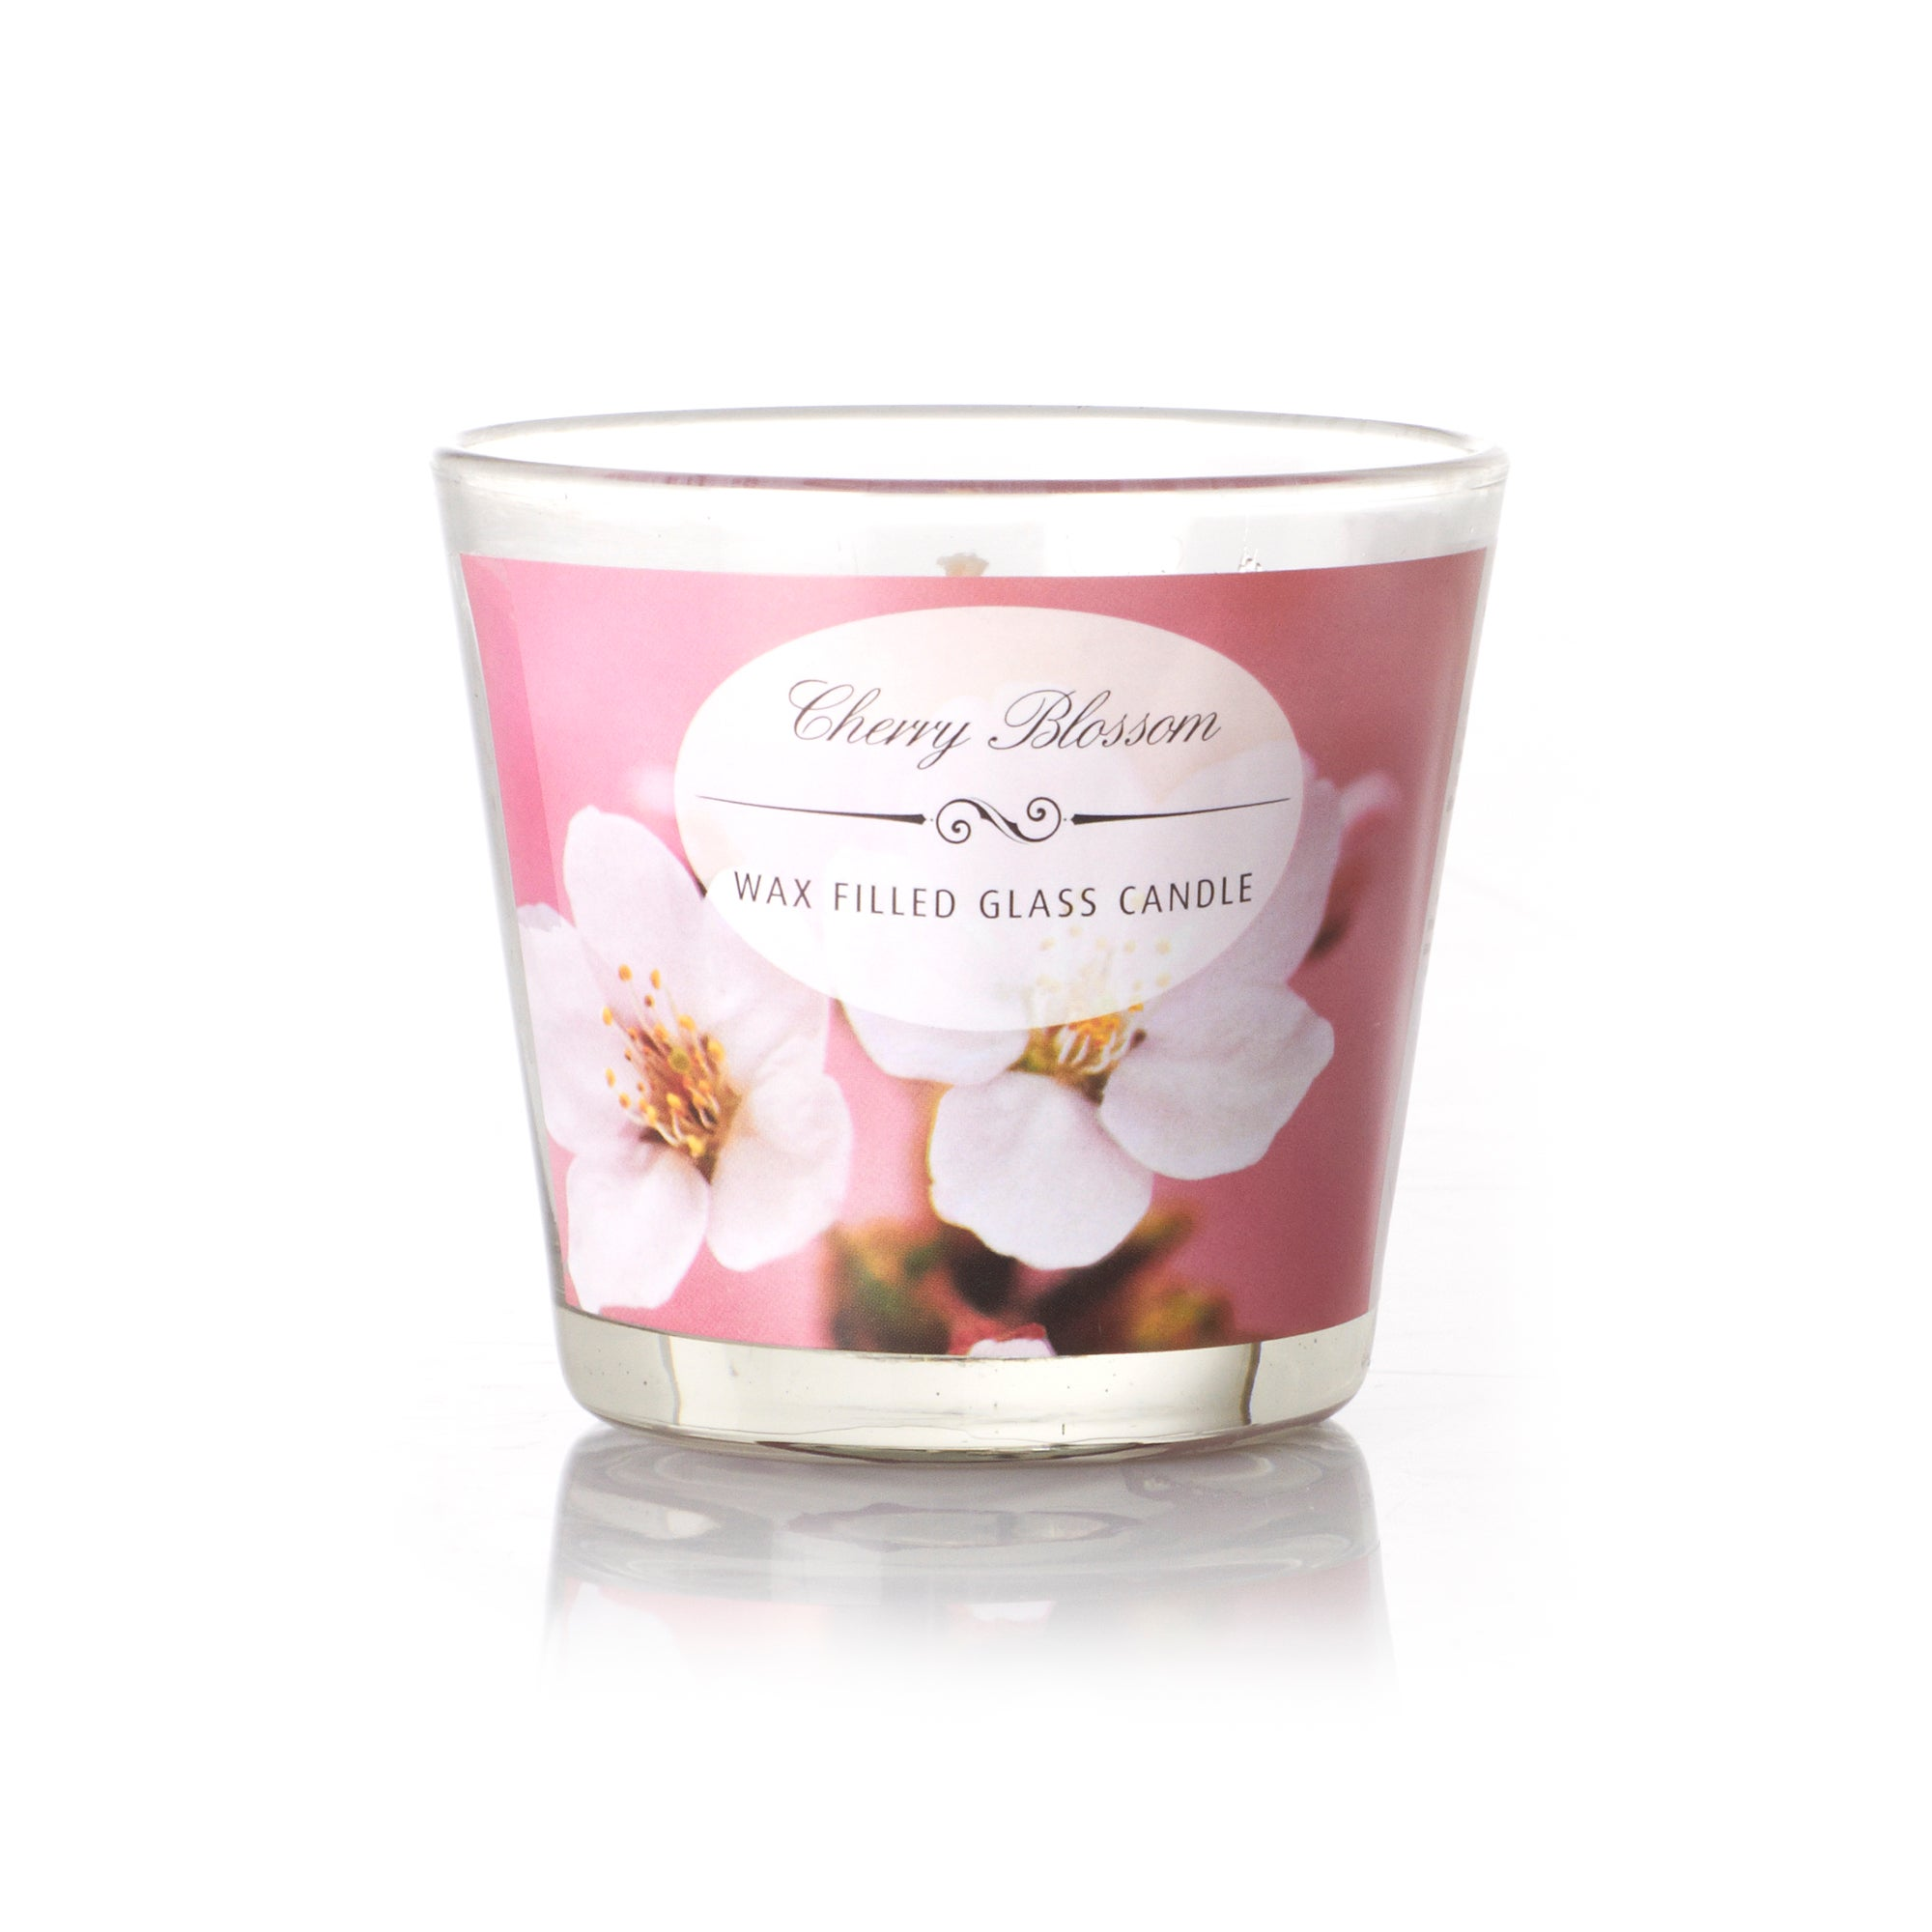 Cherry Blossom Wax Filled Glass Candle